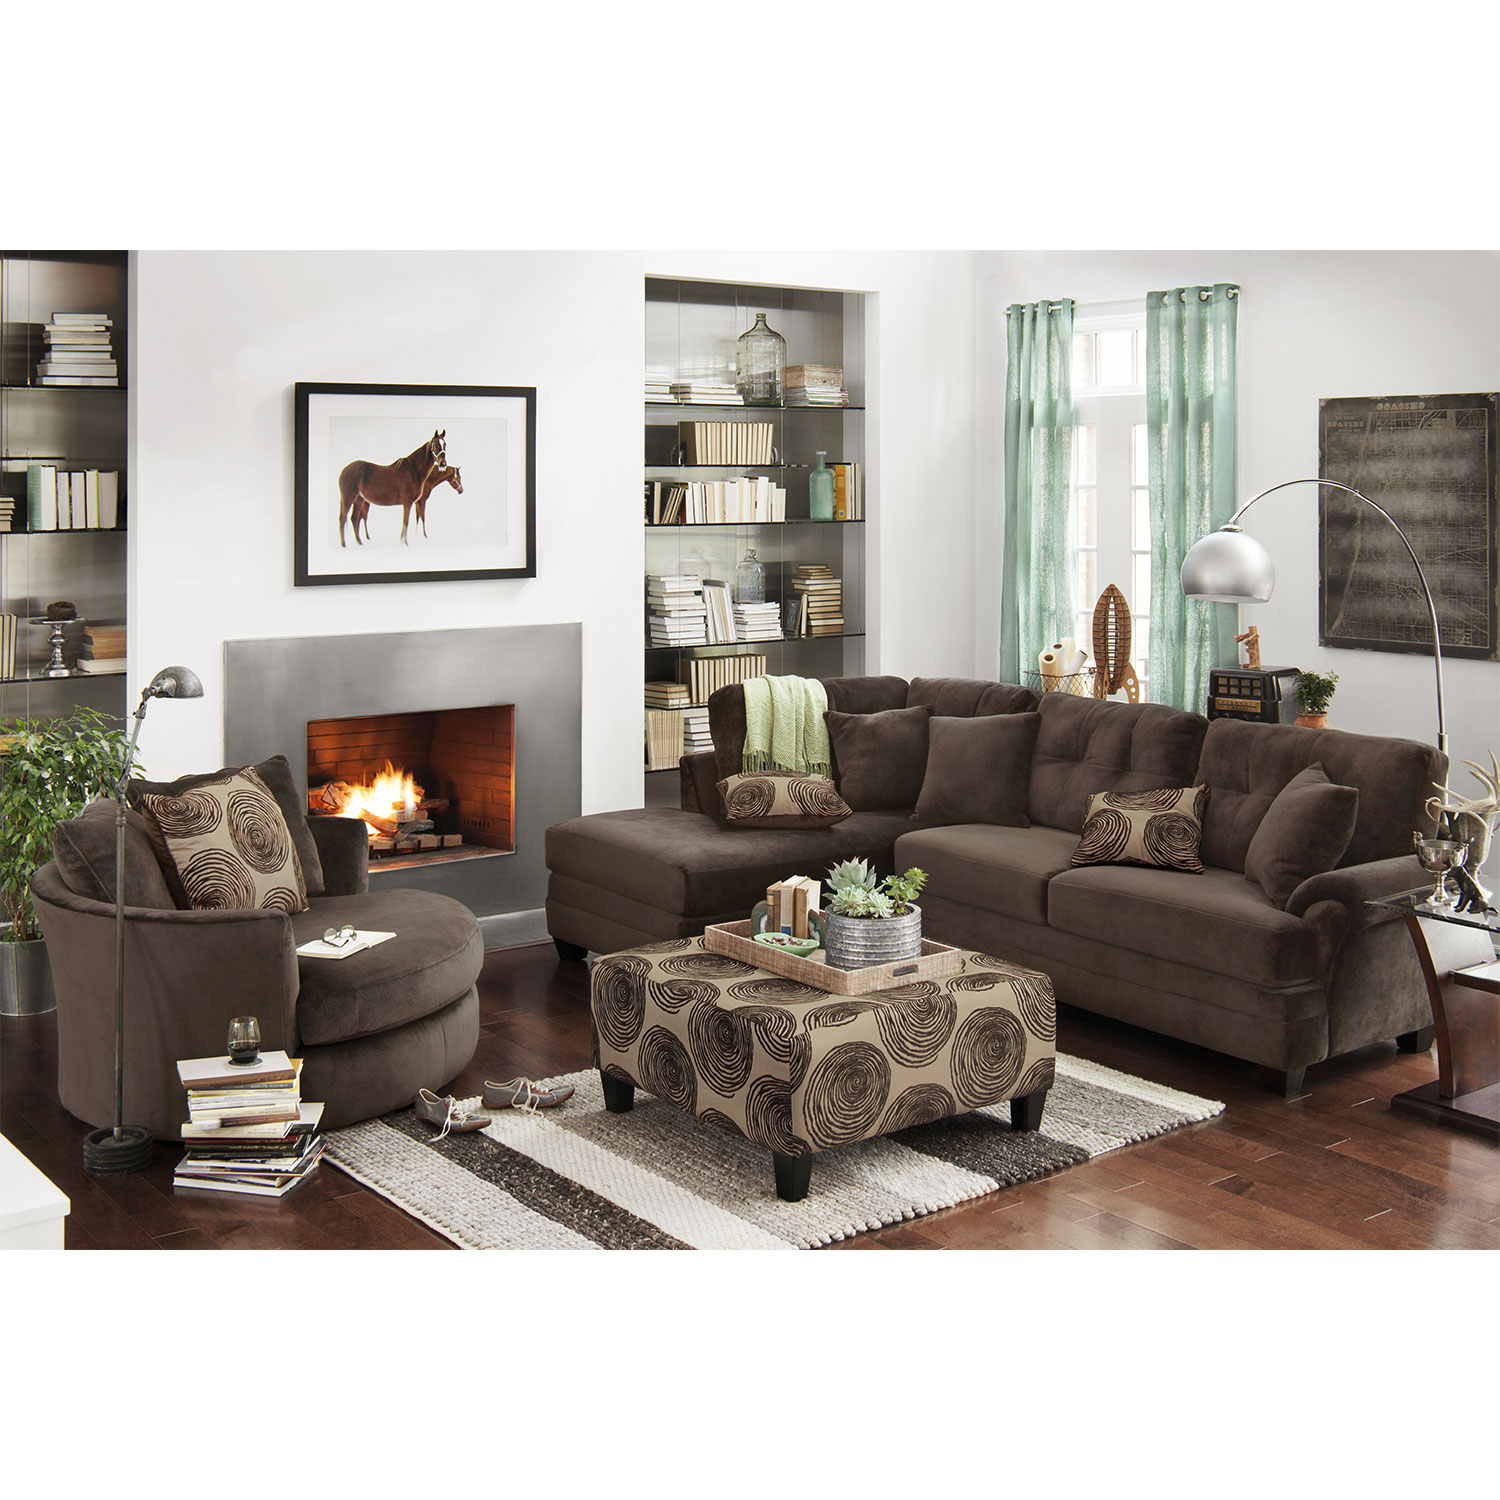 Living room furniture cordelle 2 piece sectional with chaise and cocktail ottoman set hover touch to zoom click to change image